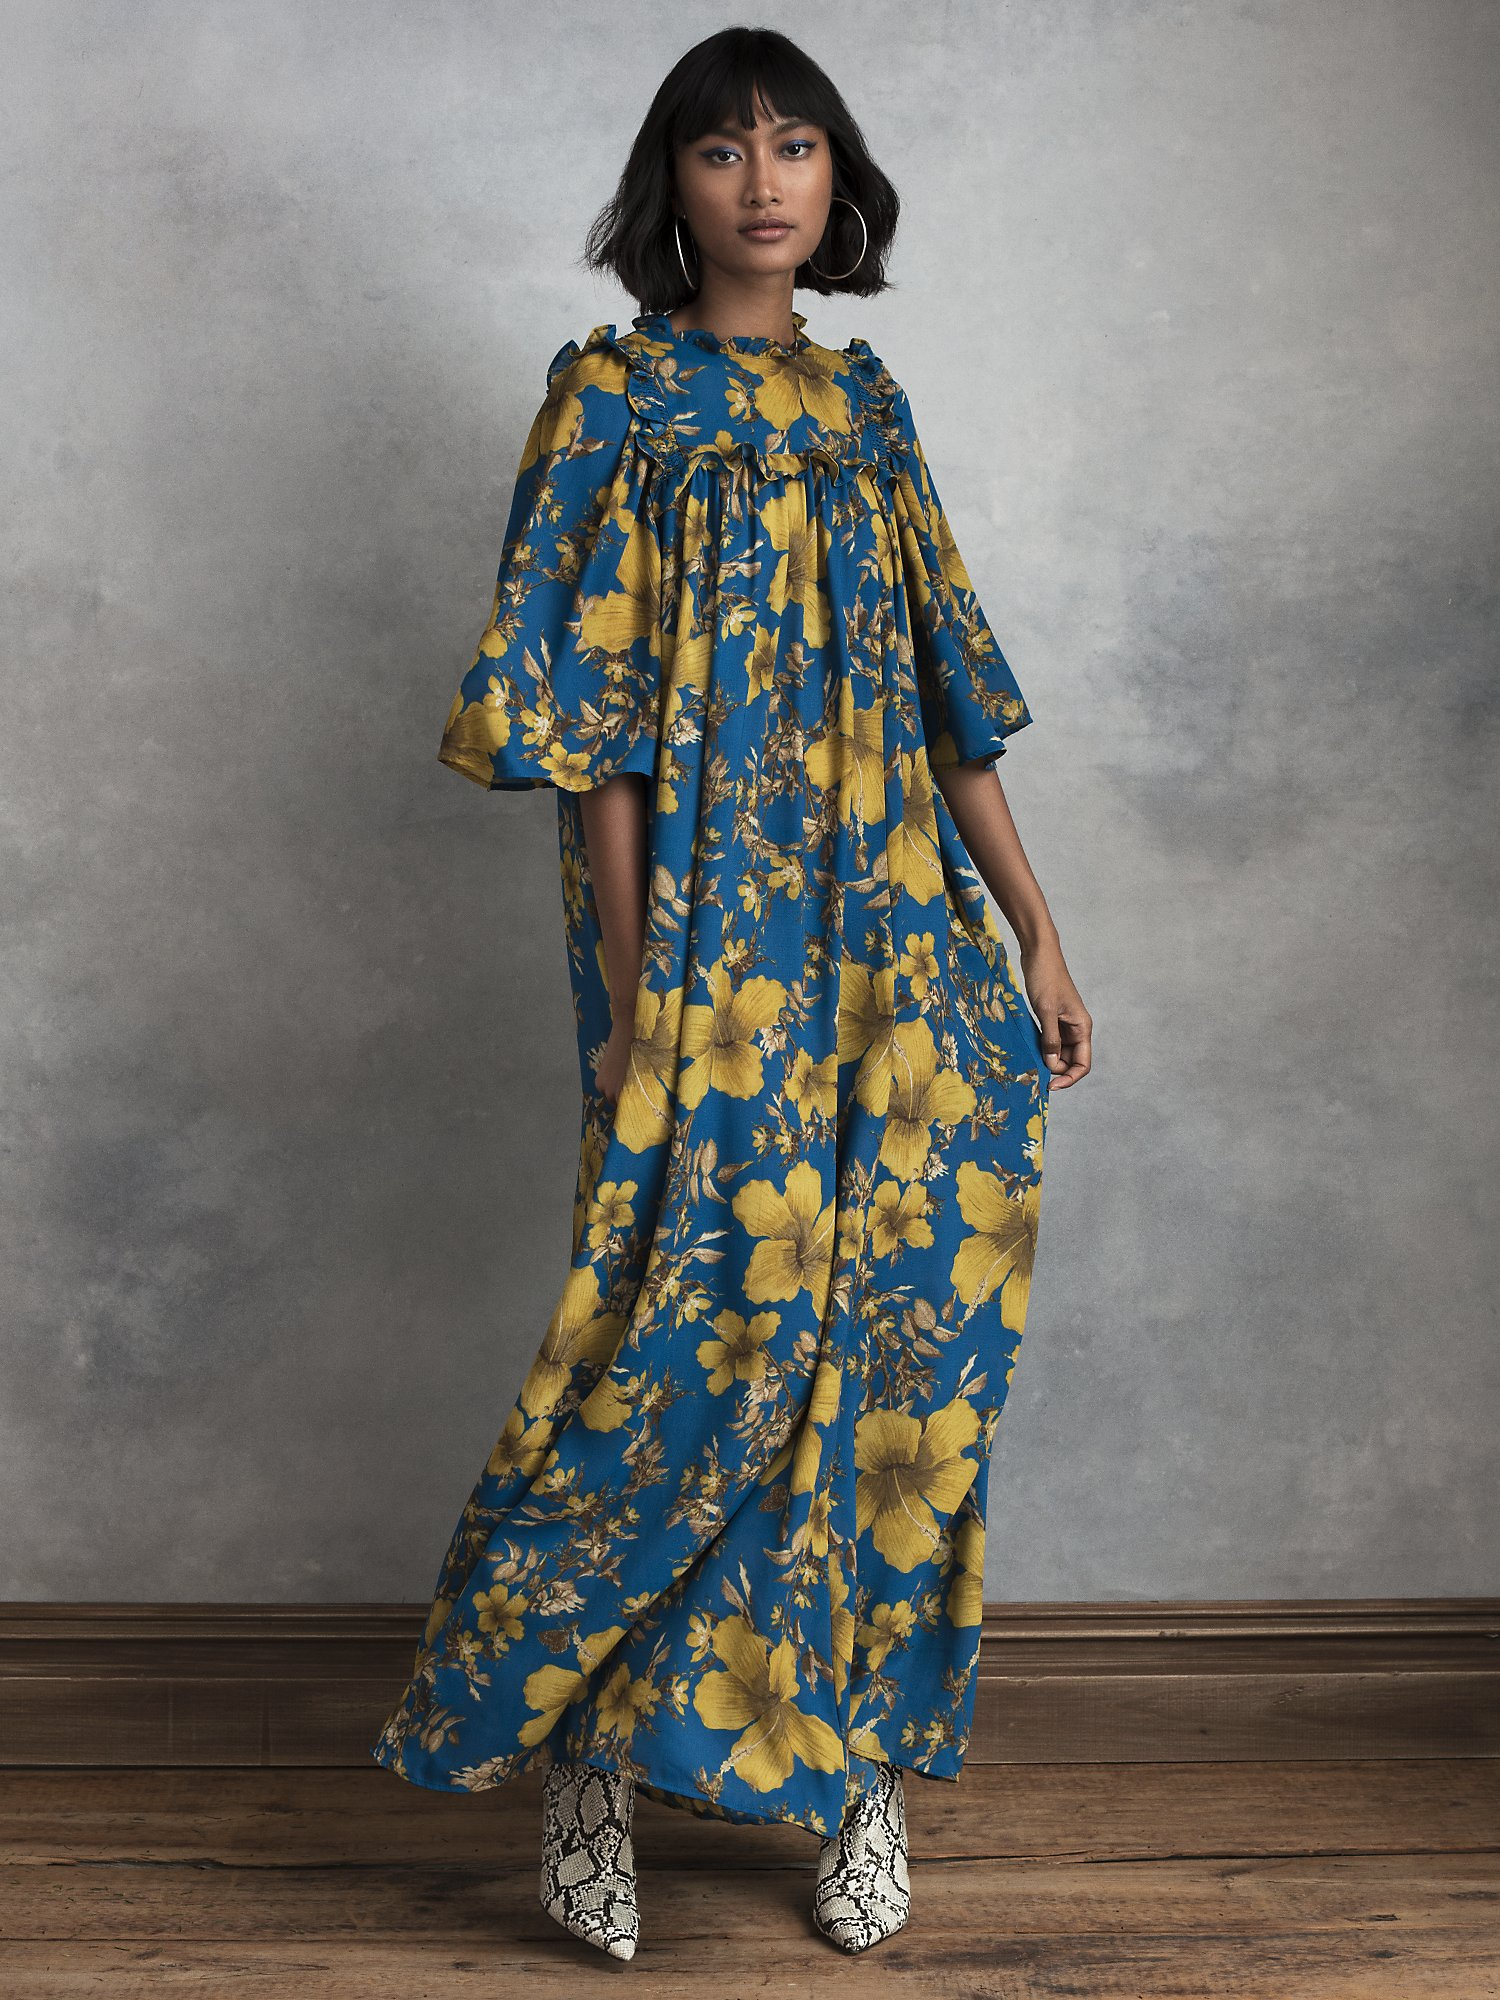 500 Vintage Style Dresses for Sale | Vintage Inspired Dresses Womens Nola Recycled Polyester Maxi Dress in Blue Sapphire Hibiscus  Size X-Large by HappyxNature $84.00 AT vintagedancer.com